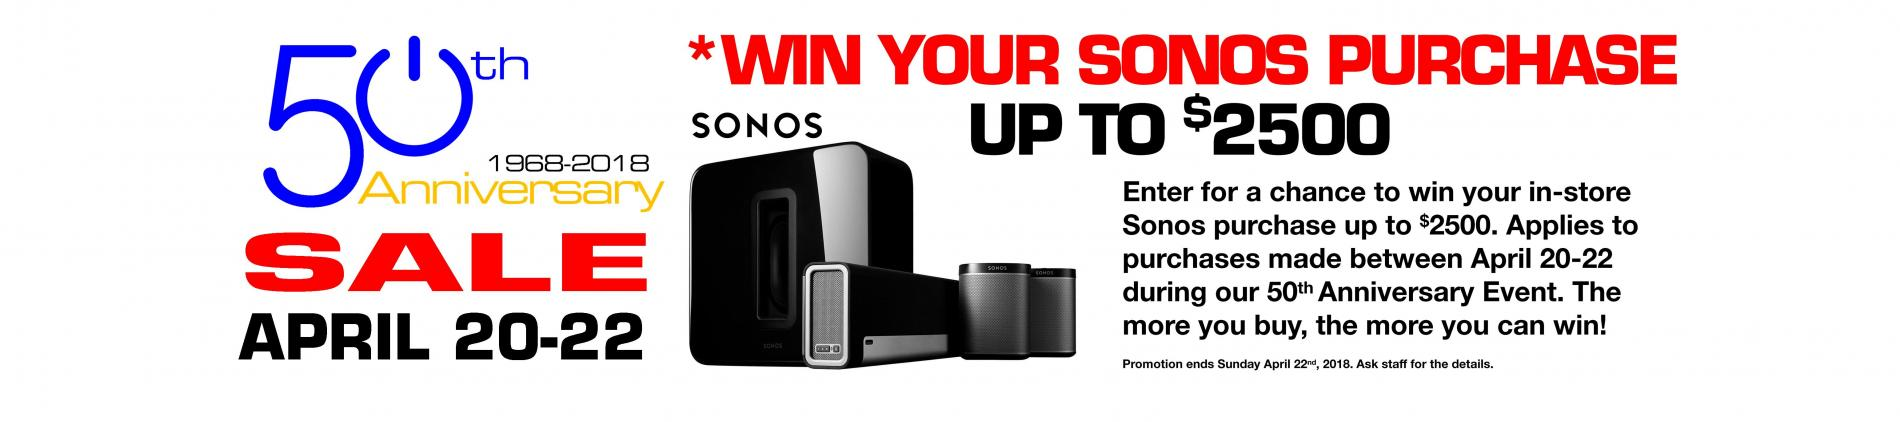 April 20-22 2018 Only. Enter for a Chance to Win your Sonos Purchase up to $2500.